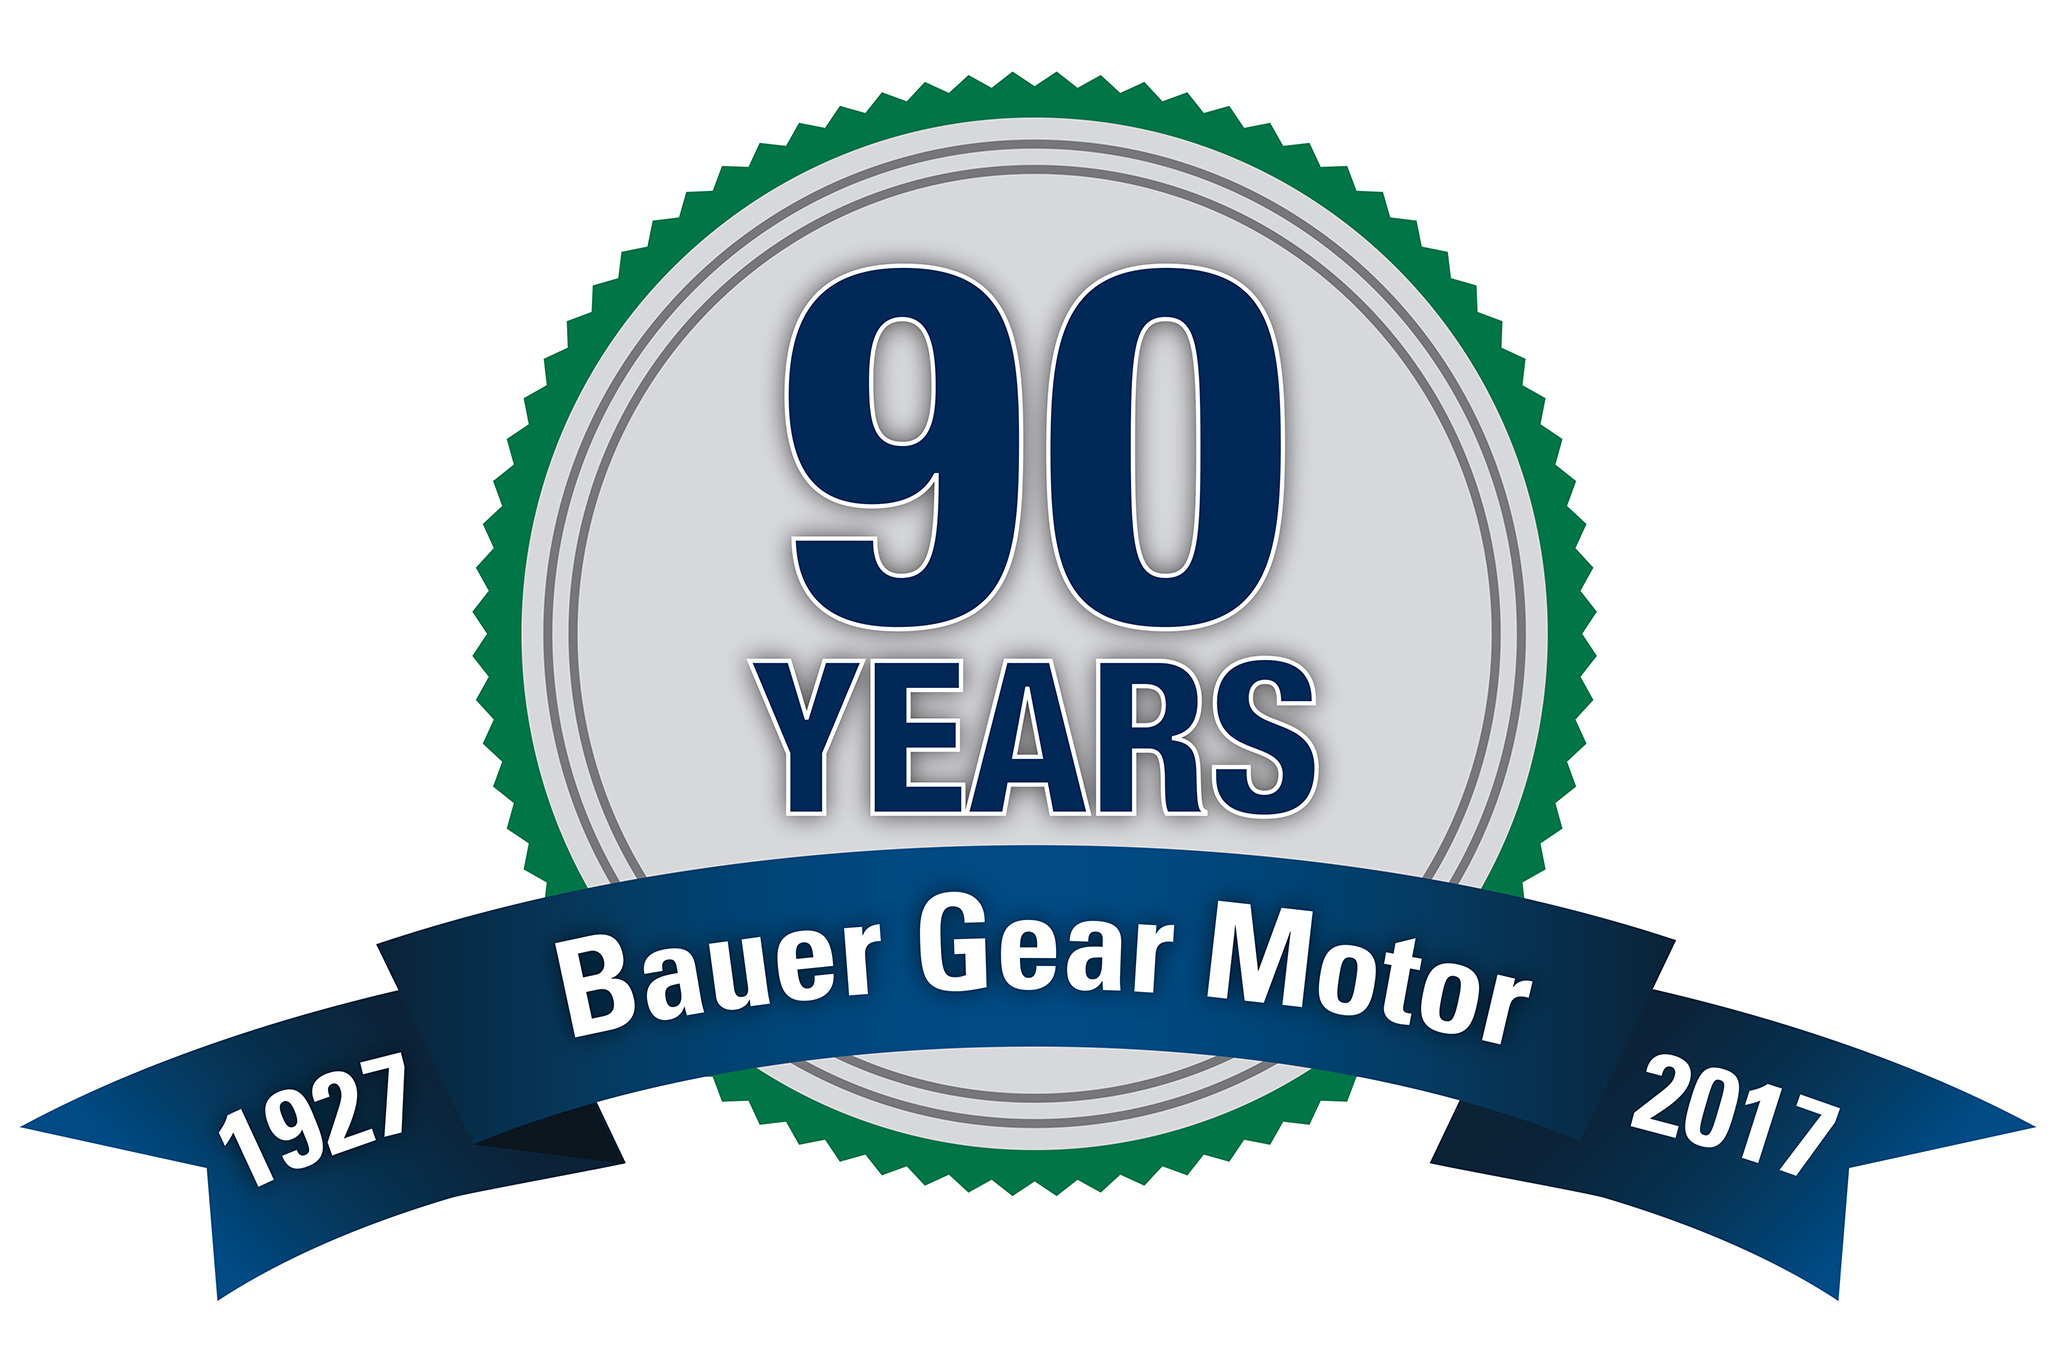 Innovation since 1927: Bauer Gear Motor celebrates its 90th anniversary